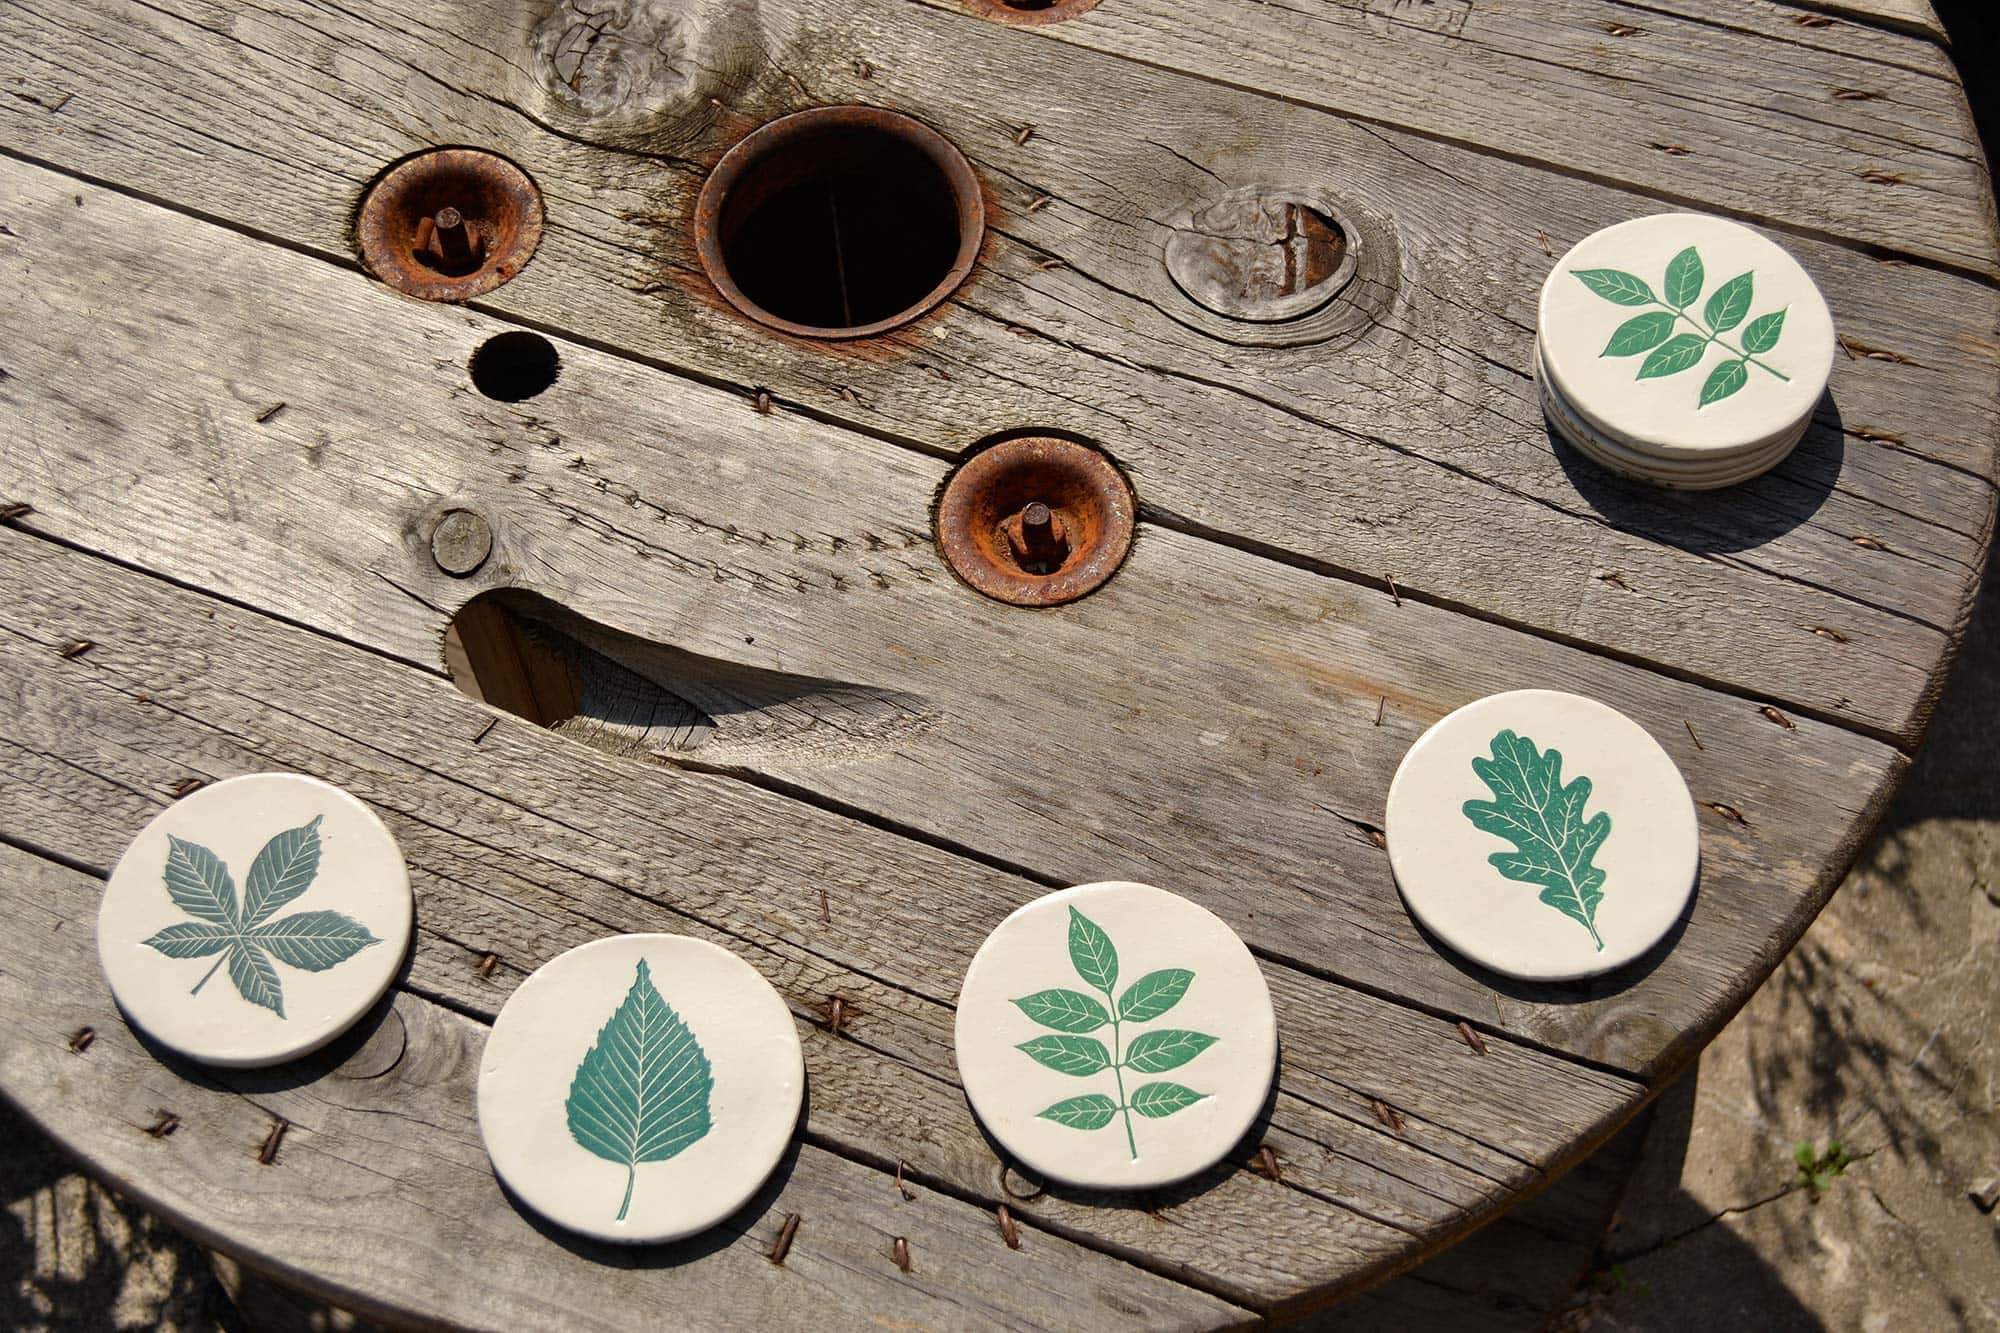 CBK Spring Green Ceramic Coasters